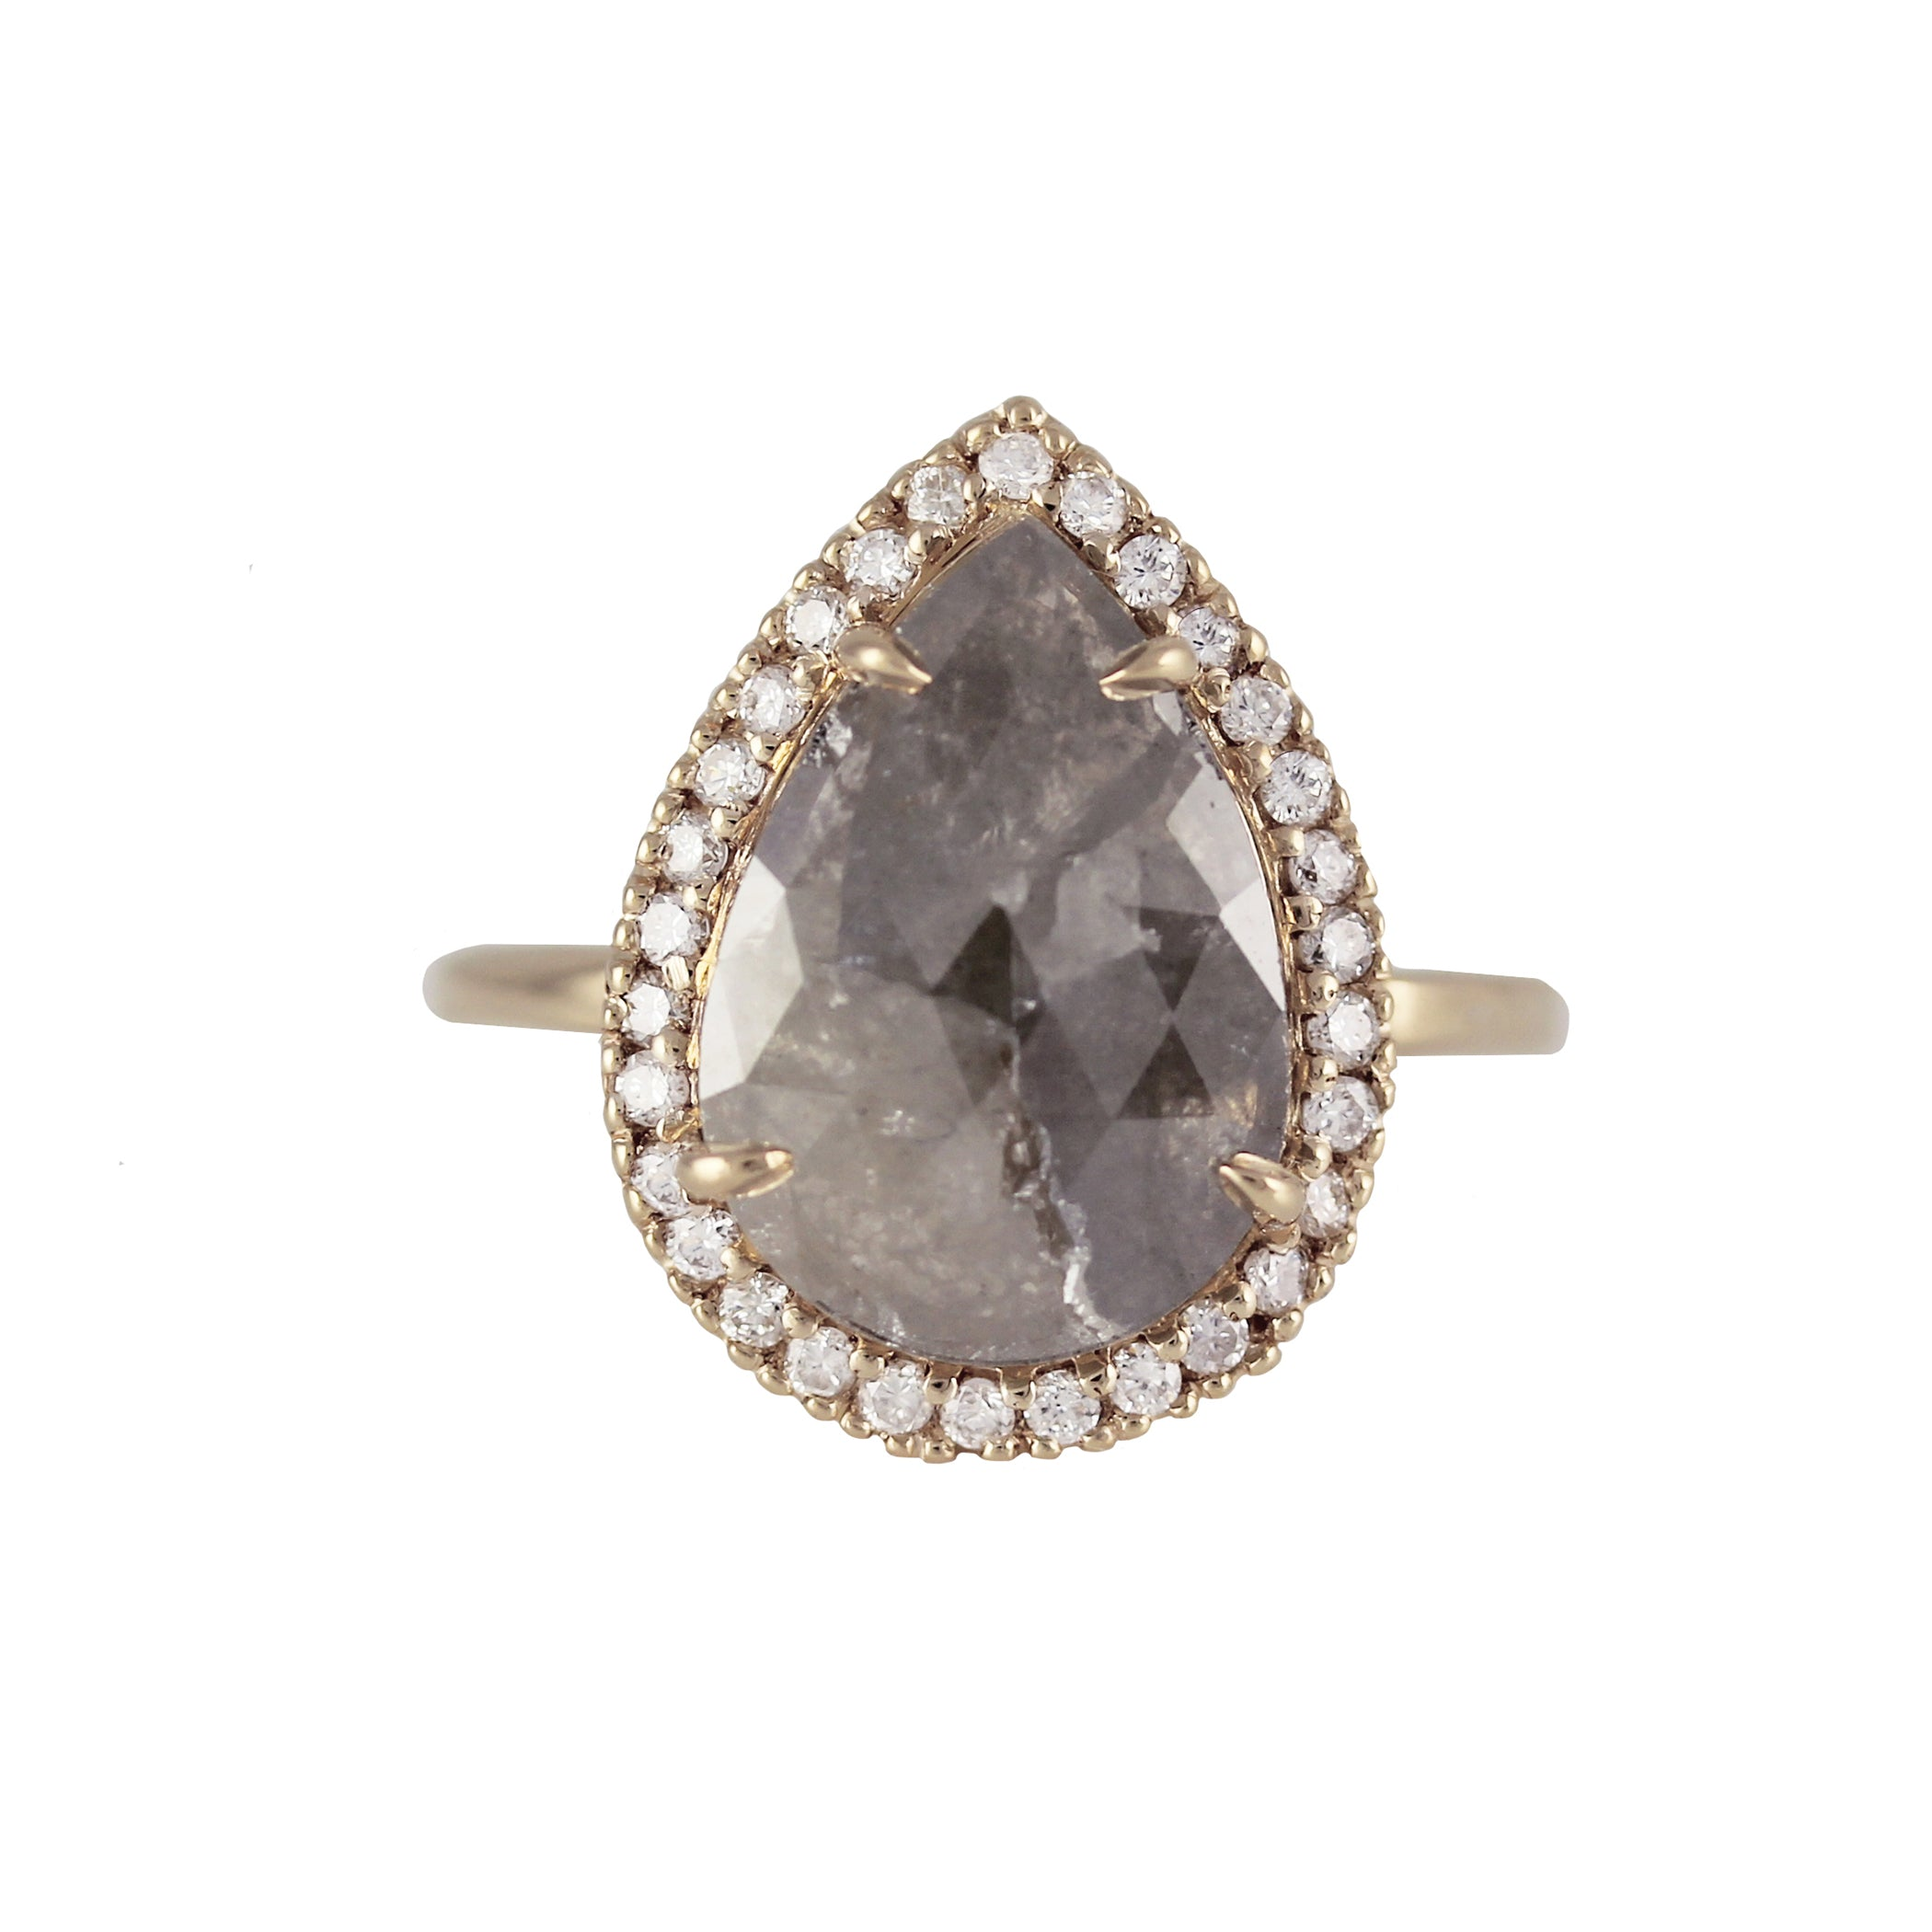 PEAR RUSTIC GREY DIAMOND WITH HALO RING